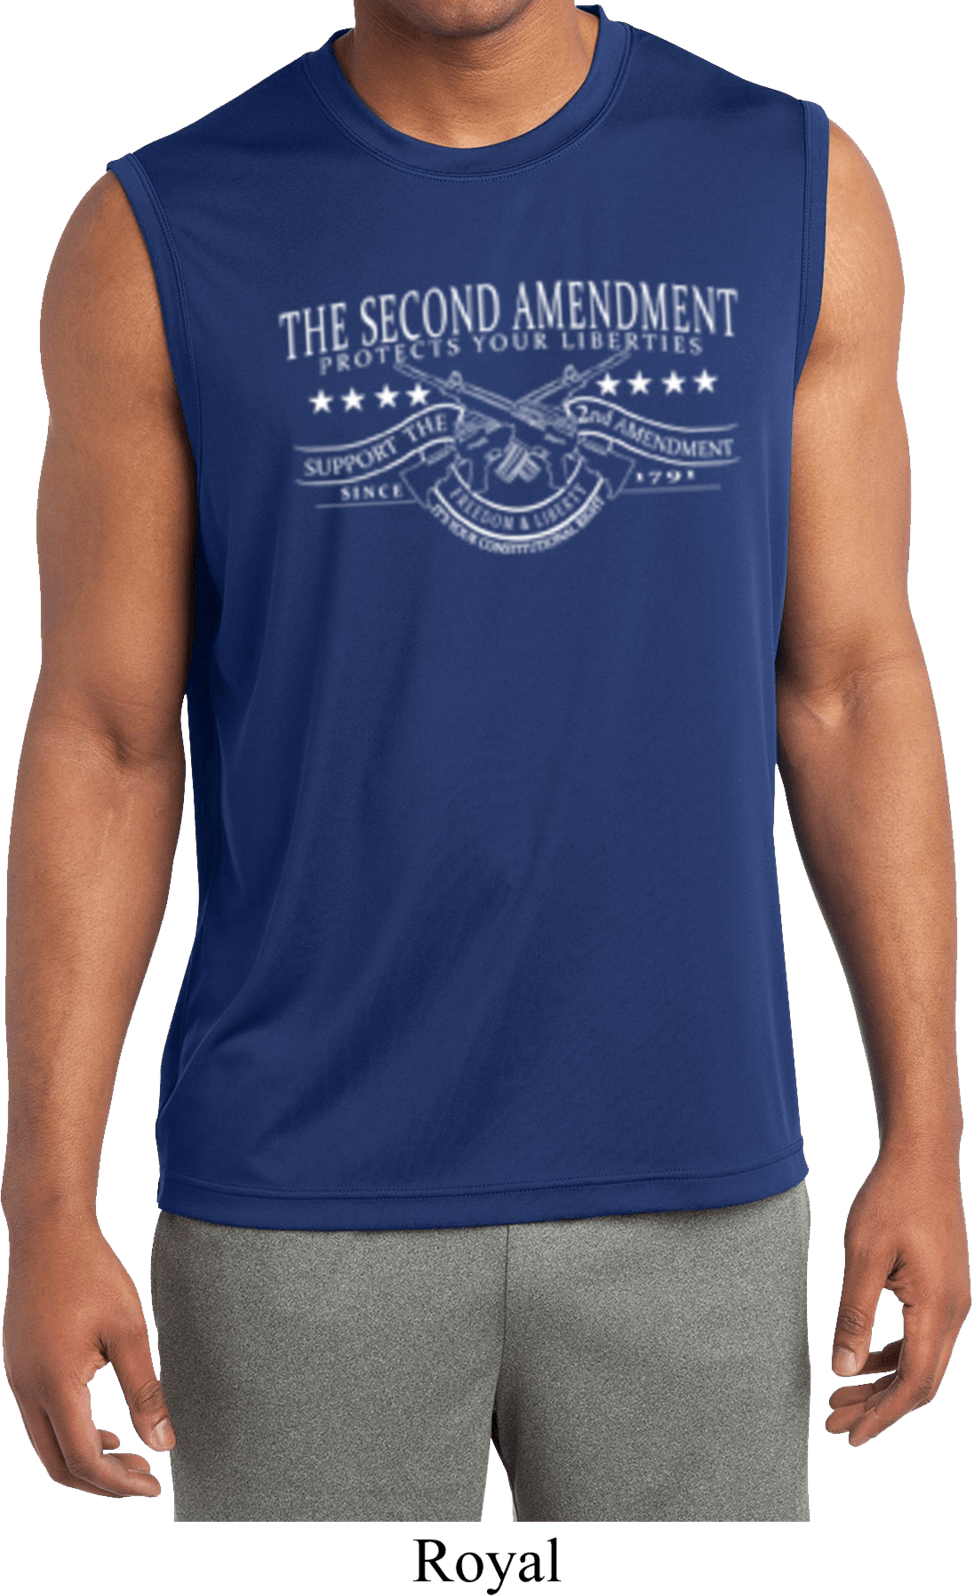 The Second Amendment Mens Sleeveless Moisture Wicking